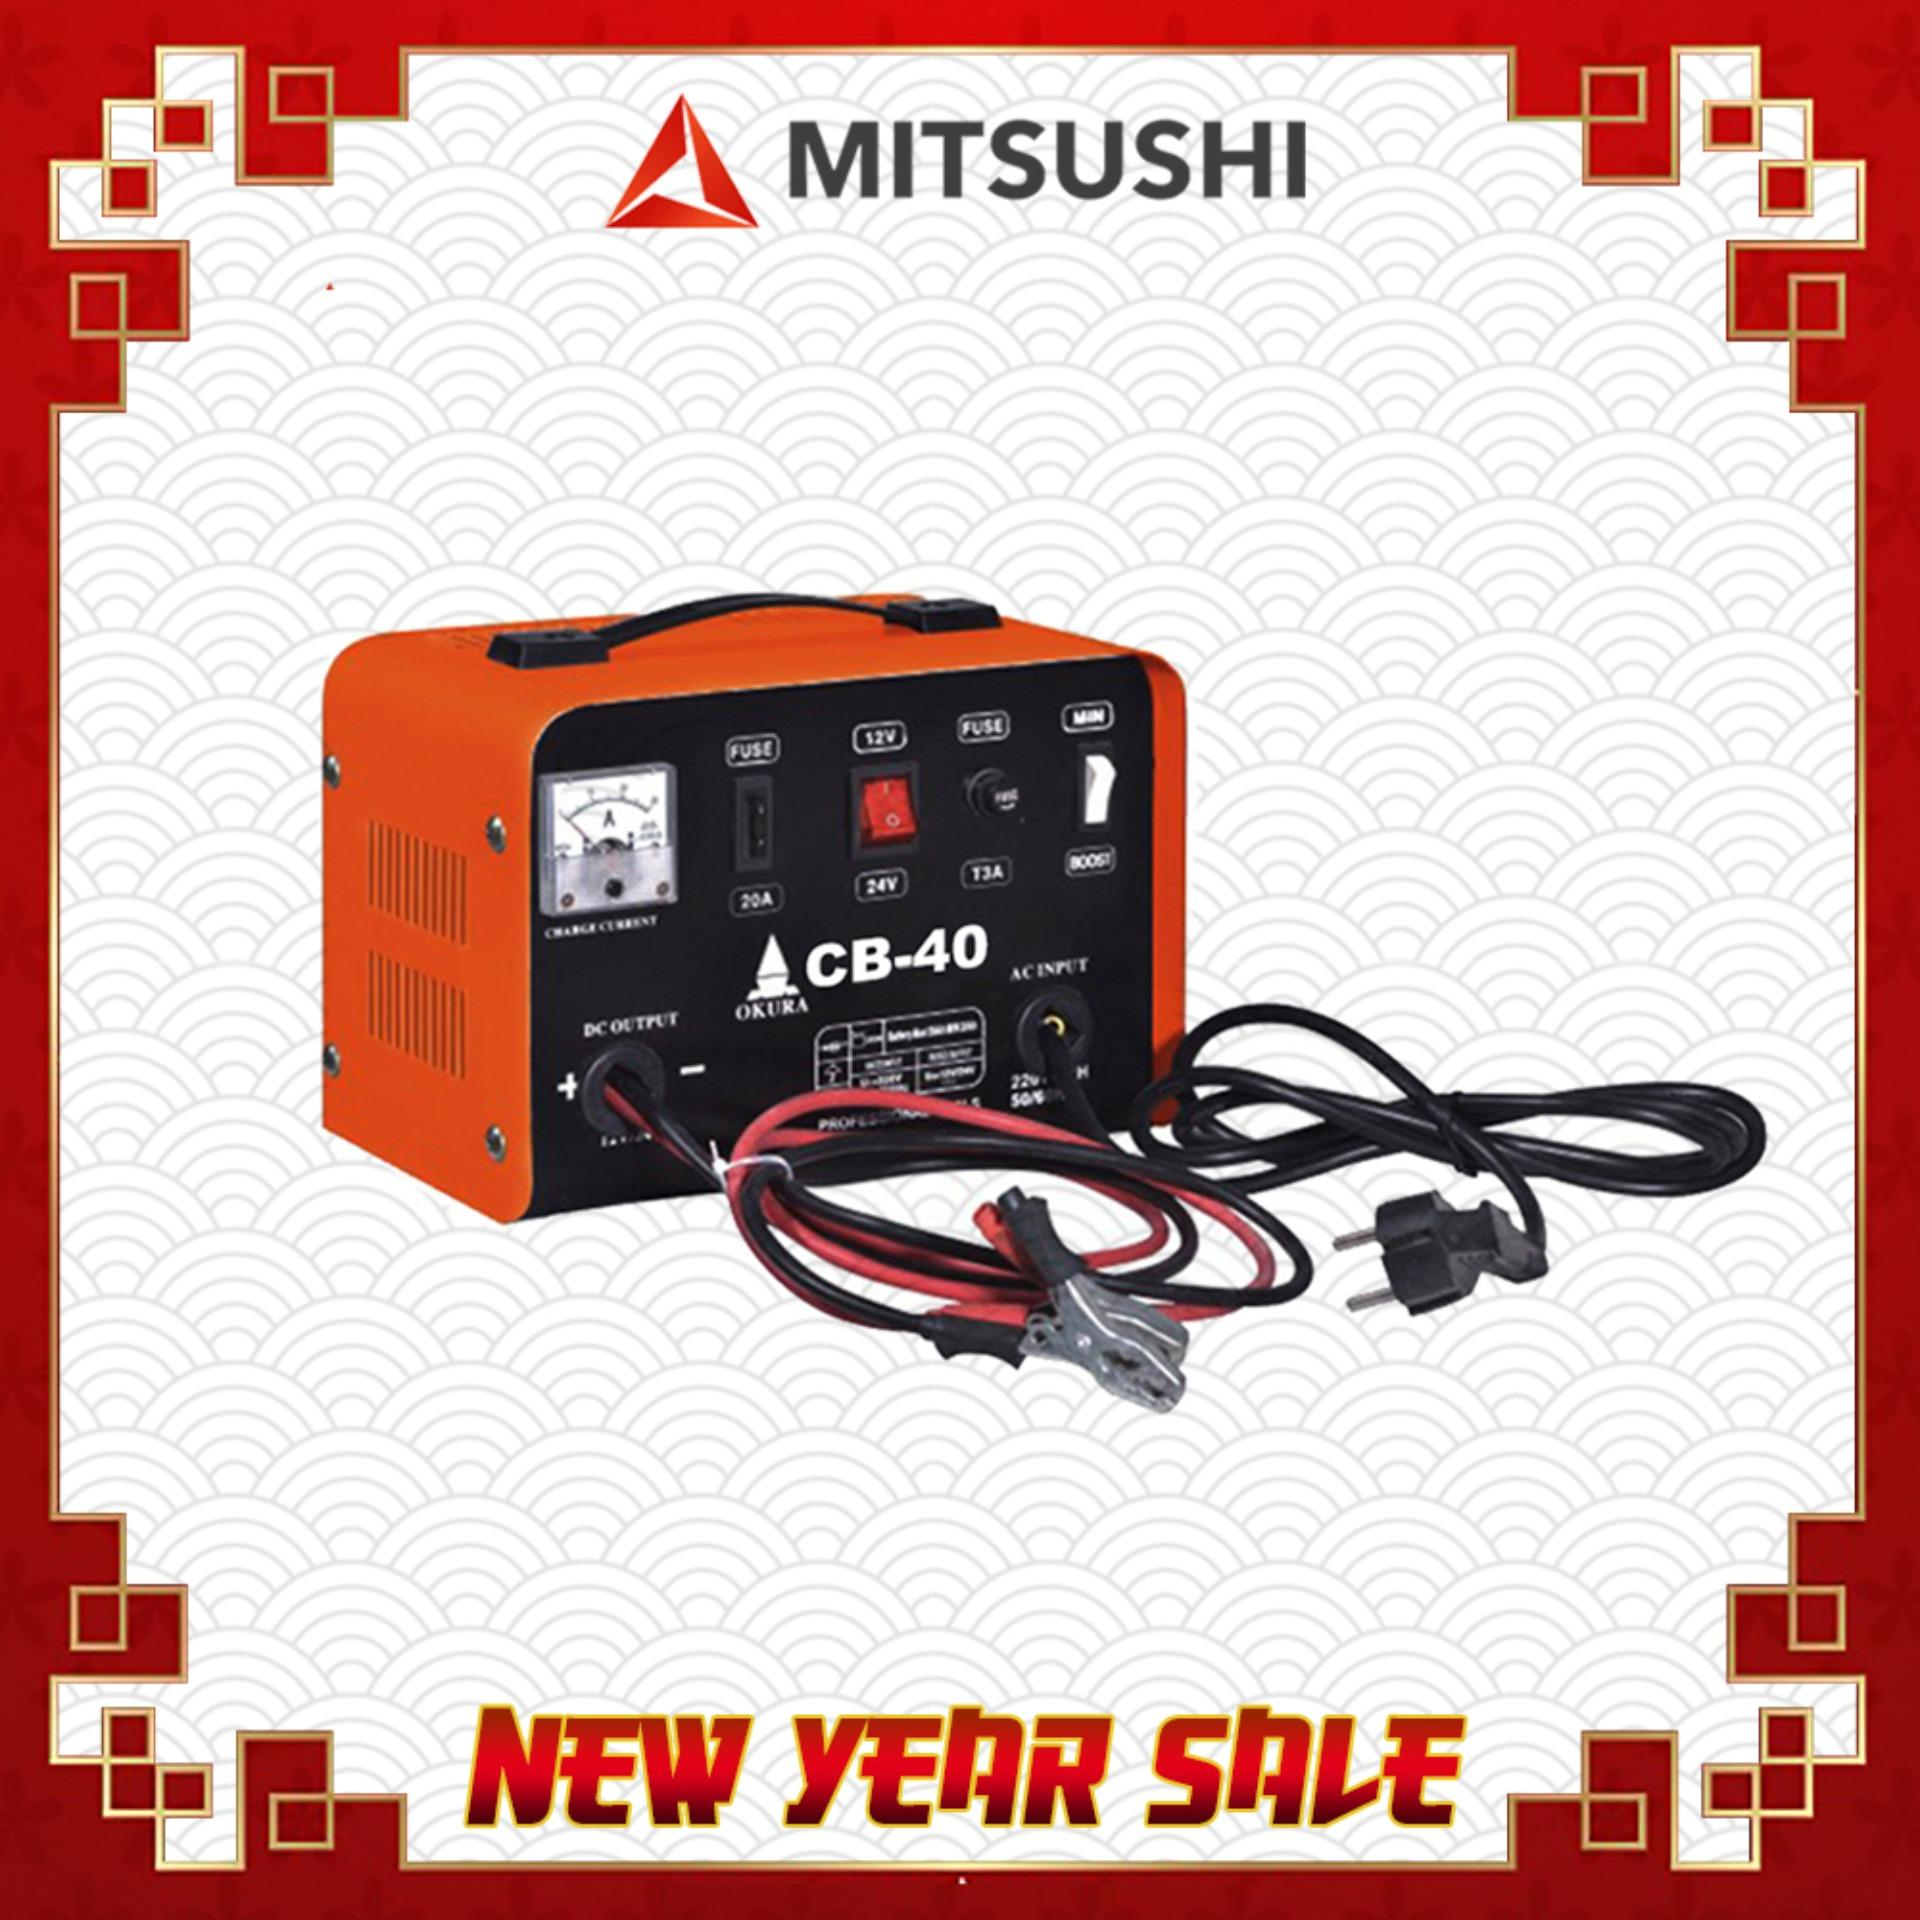 Car Battery Charger For Sale Jump Starter Online Brands Prices 15a Shortcircuit Protection Also Used Motor Mitsushi Cb 40 Fast Charging Output Voltage 12 24v Rated Current 18 25a